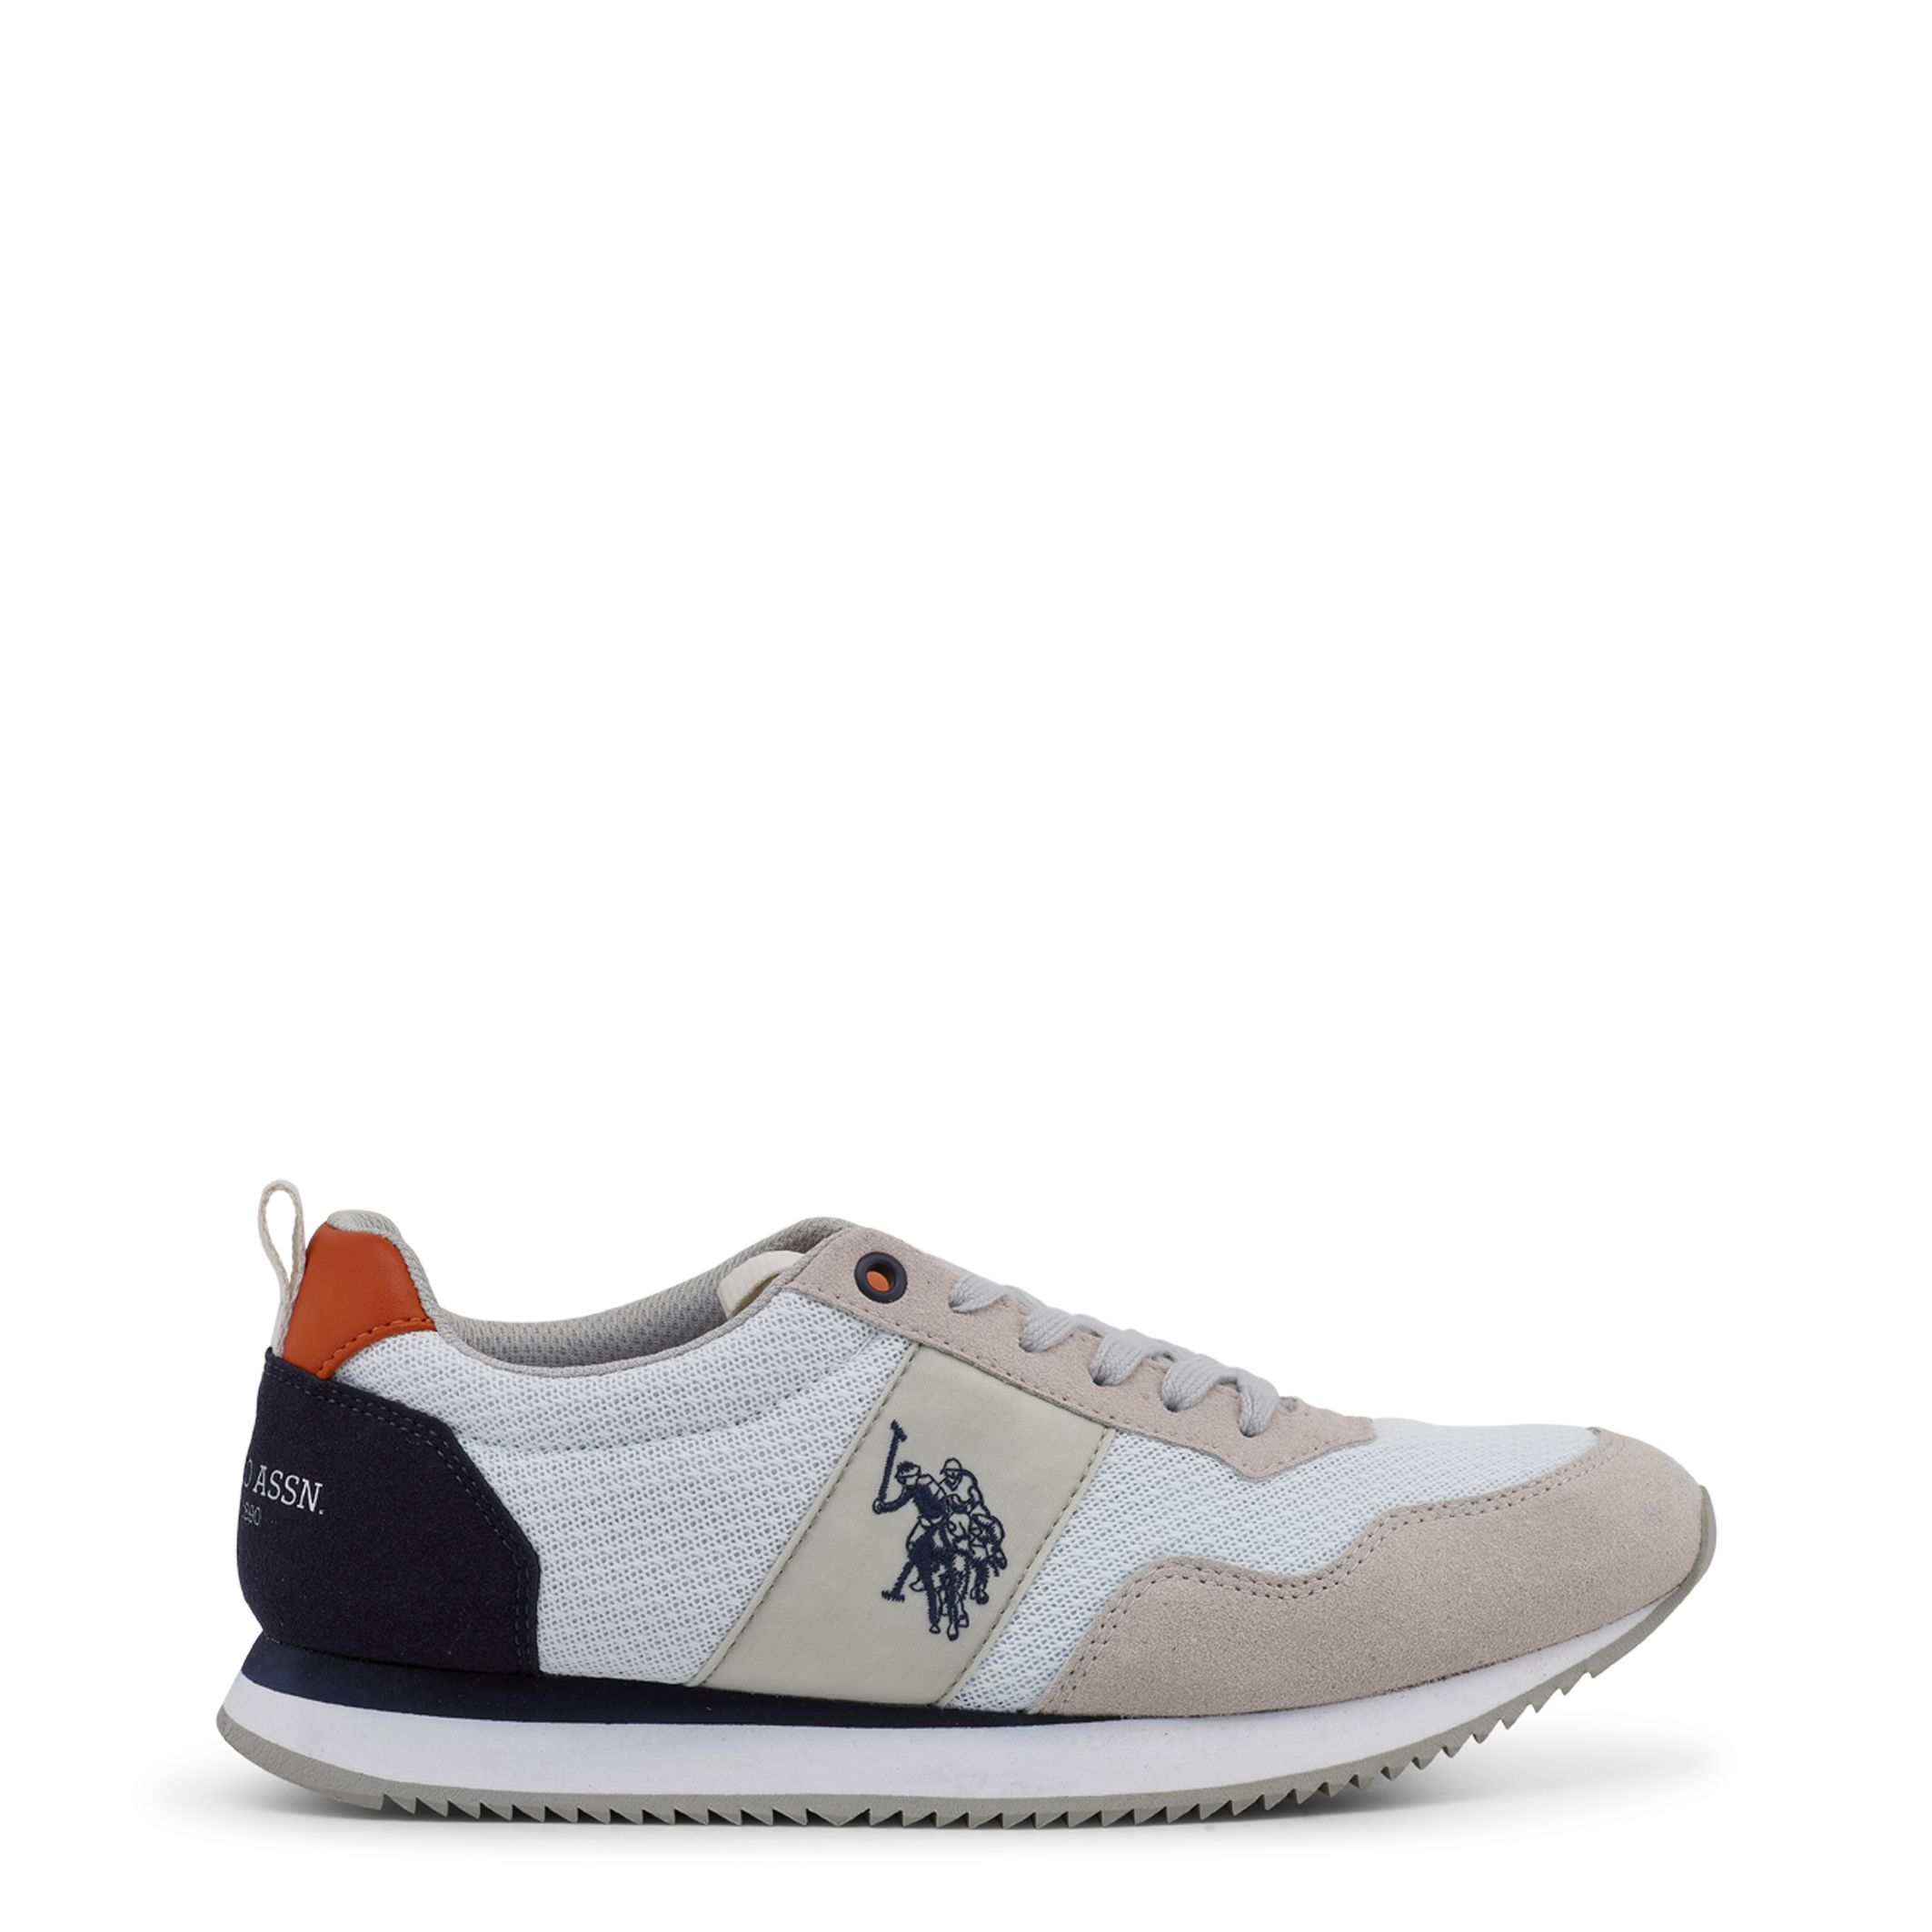 U.S. Polo Assn. Mens Sneakers